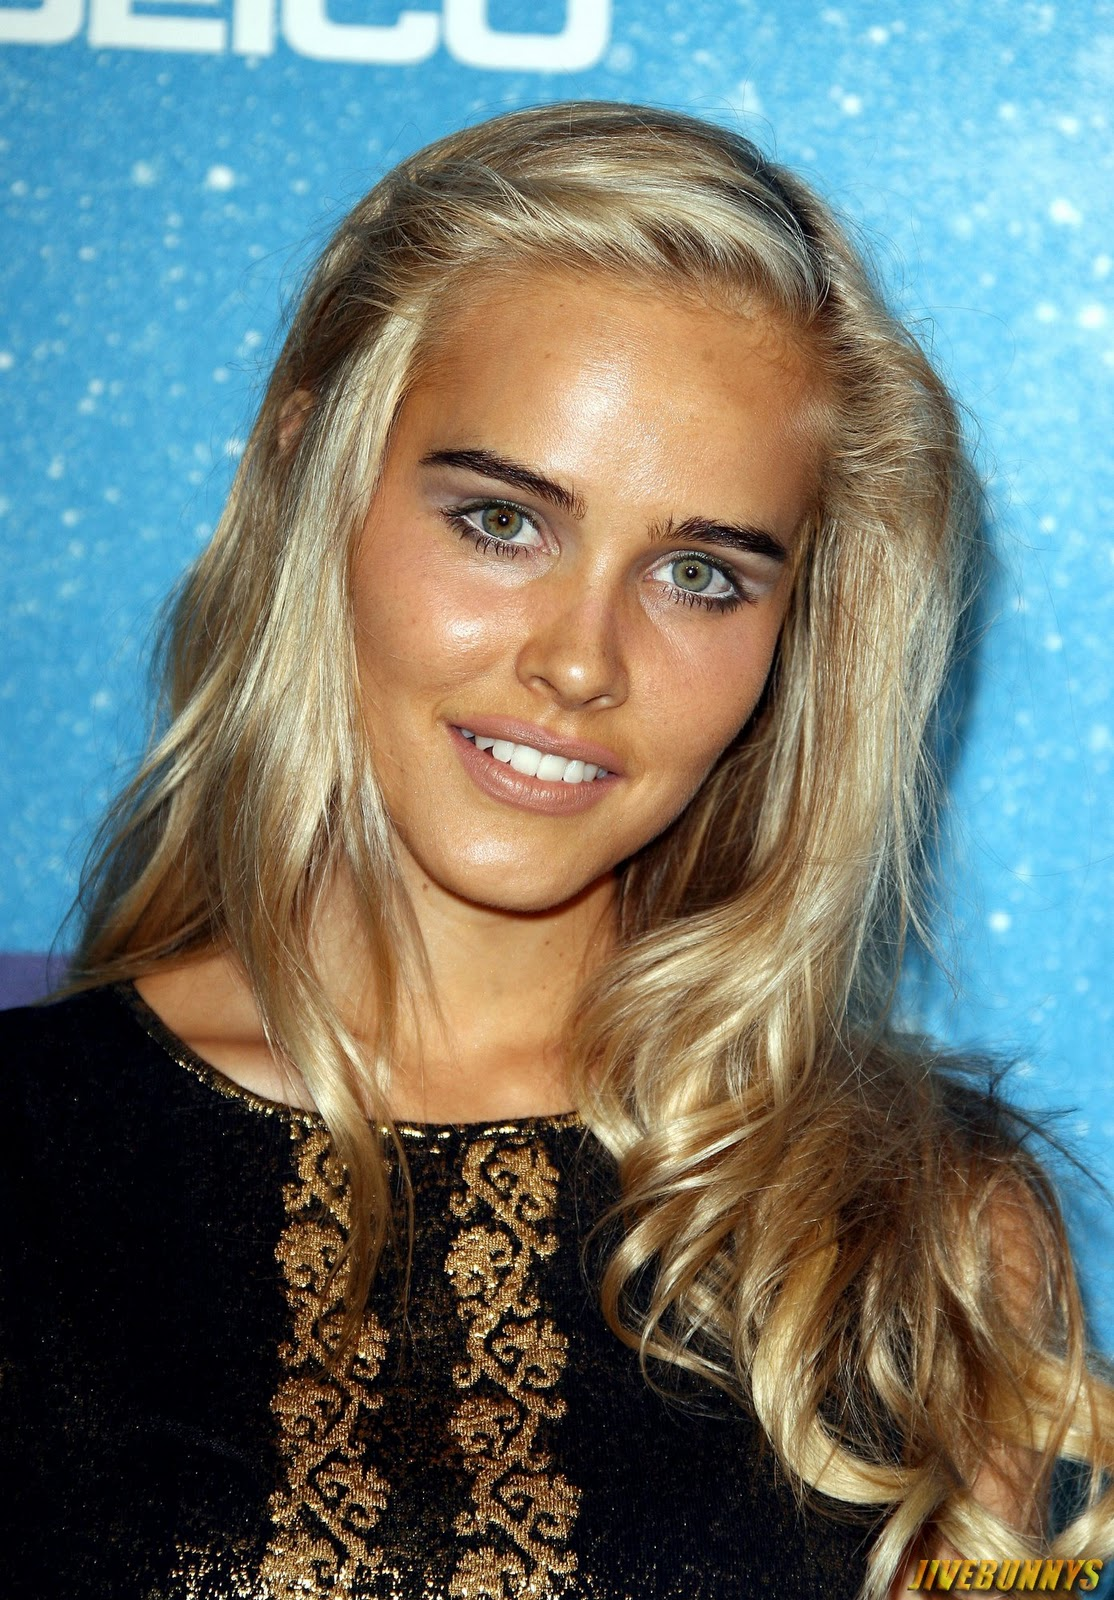 Jivebunnys Female Celebrity Picture Gallery: Isabel Lucas ...